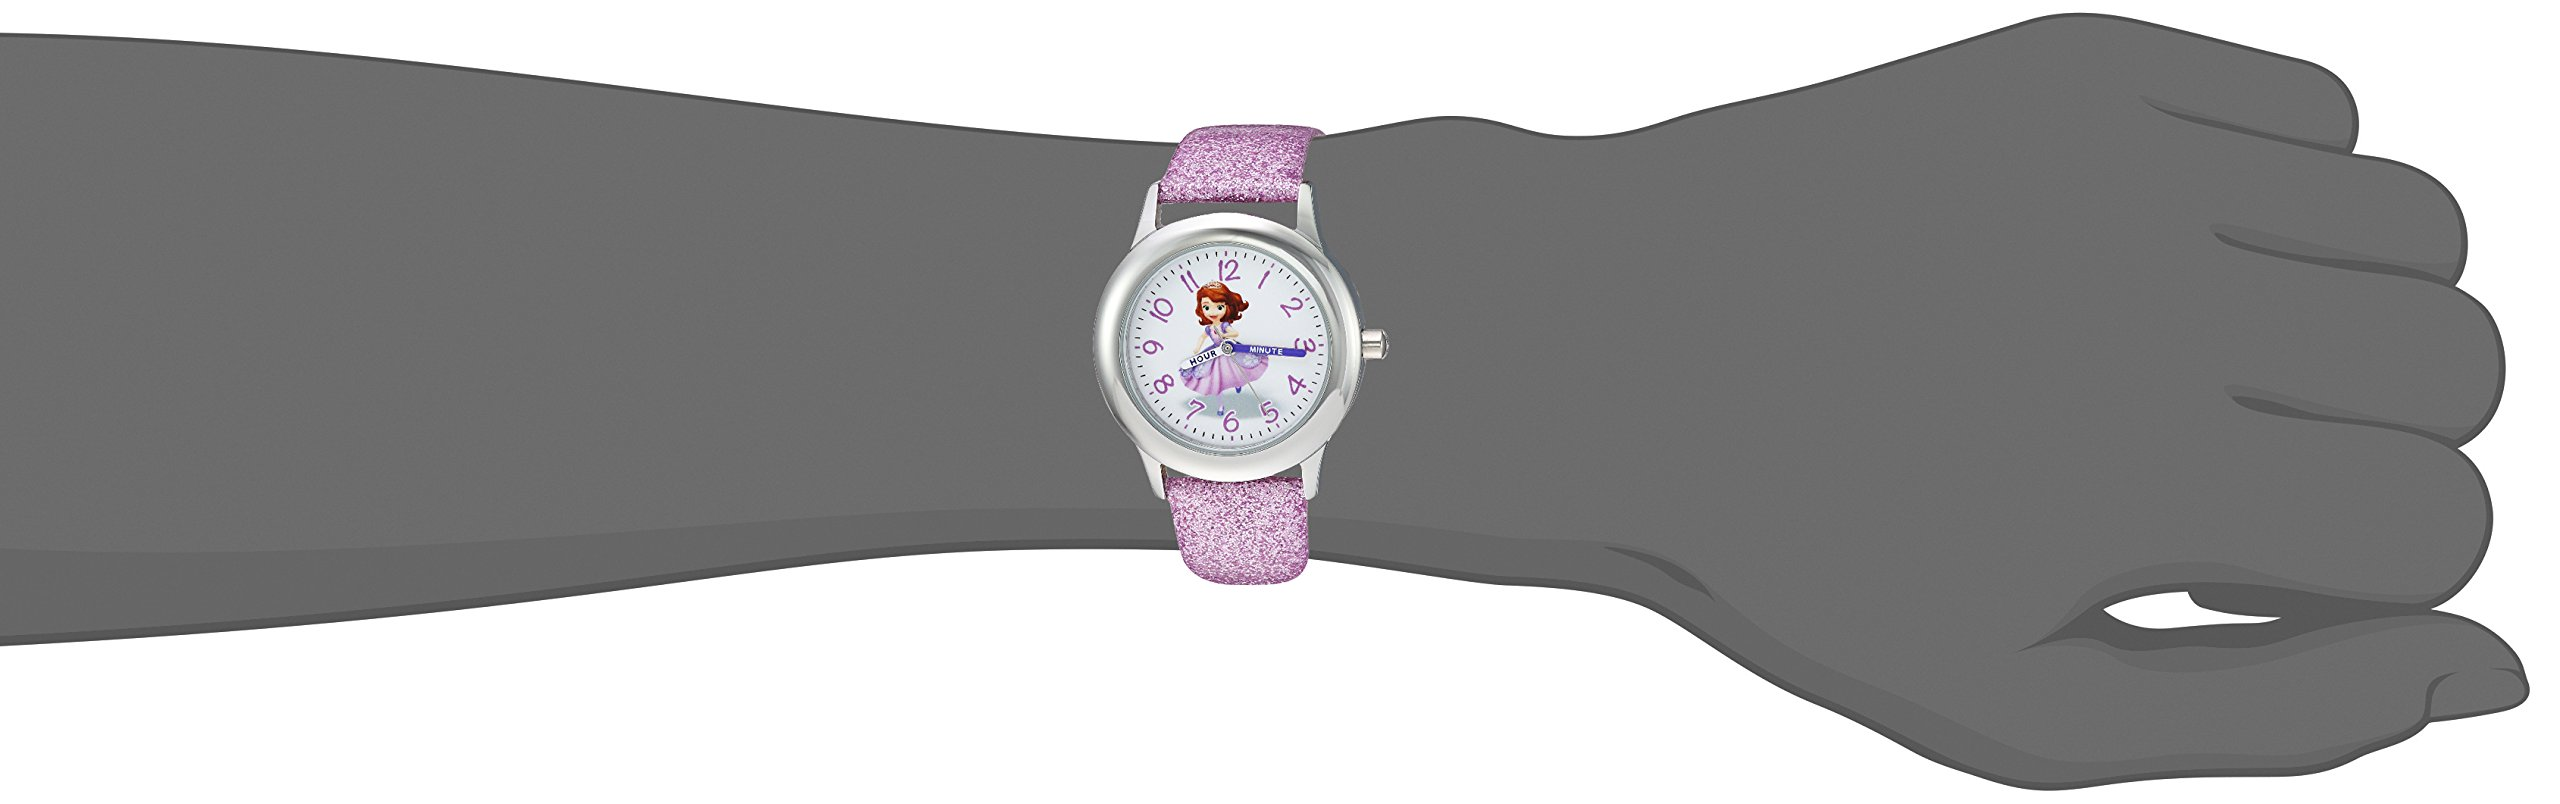 DISNEY Girls Princess Sofia Stainless Steel Analog-Quartz Watch with Leather-Synthetic Strap, Purple, 15 (Model: WDS000269) by Disney (Image #2)